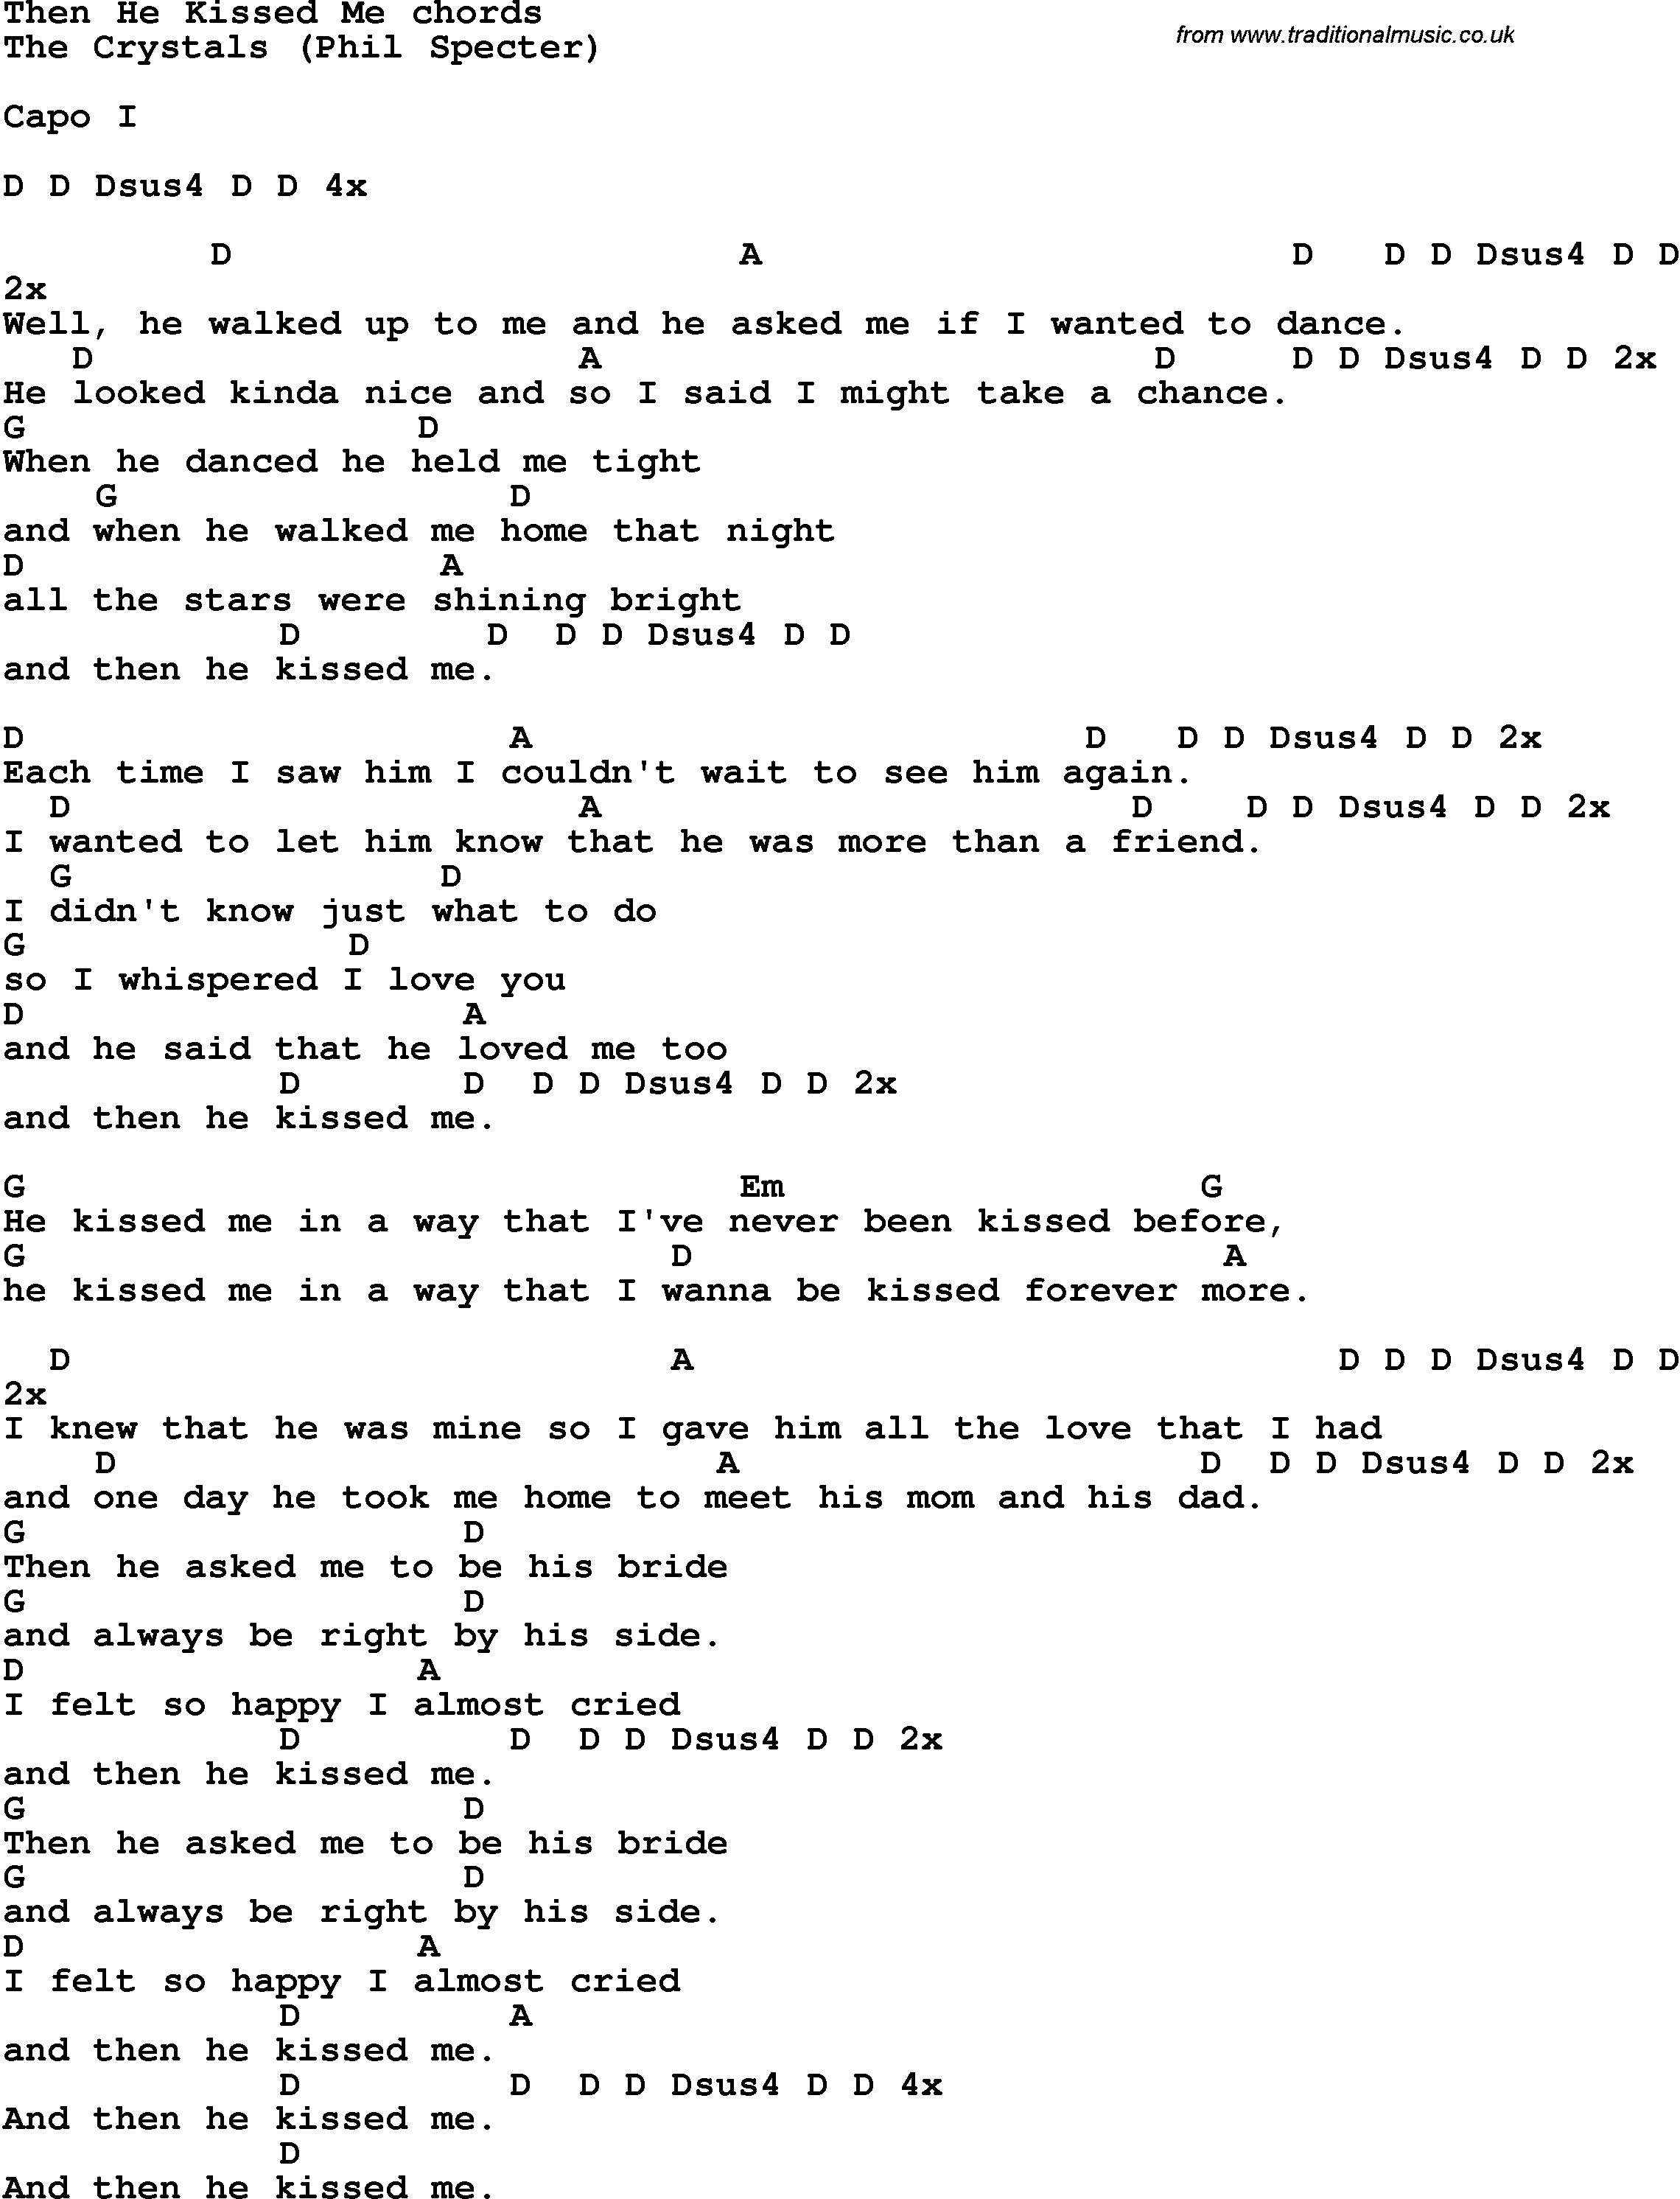 Kiss Me Chords Song Lyrics With Guitar Chords For Then He Kissed Me The Crystals